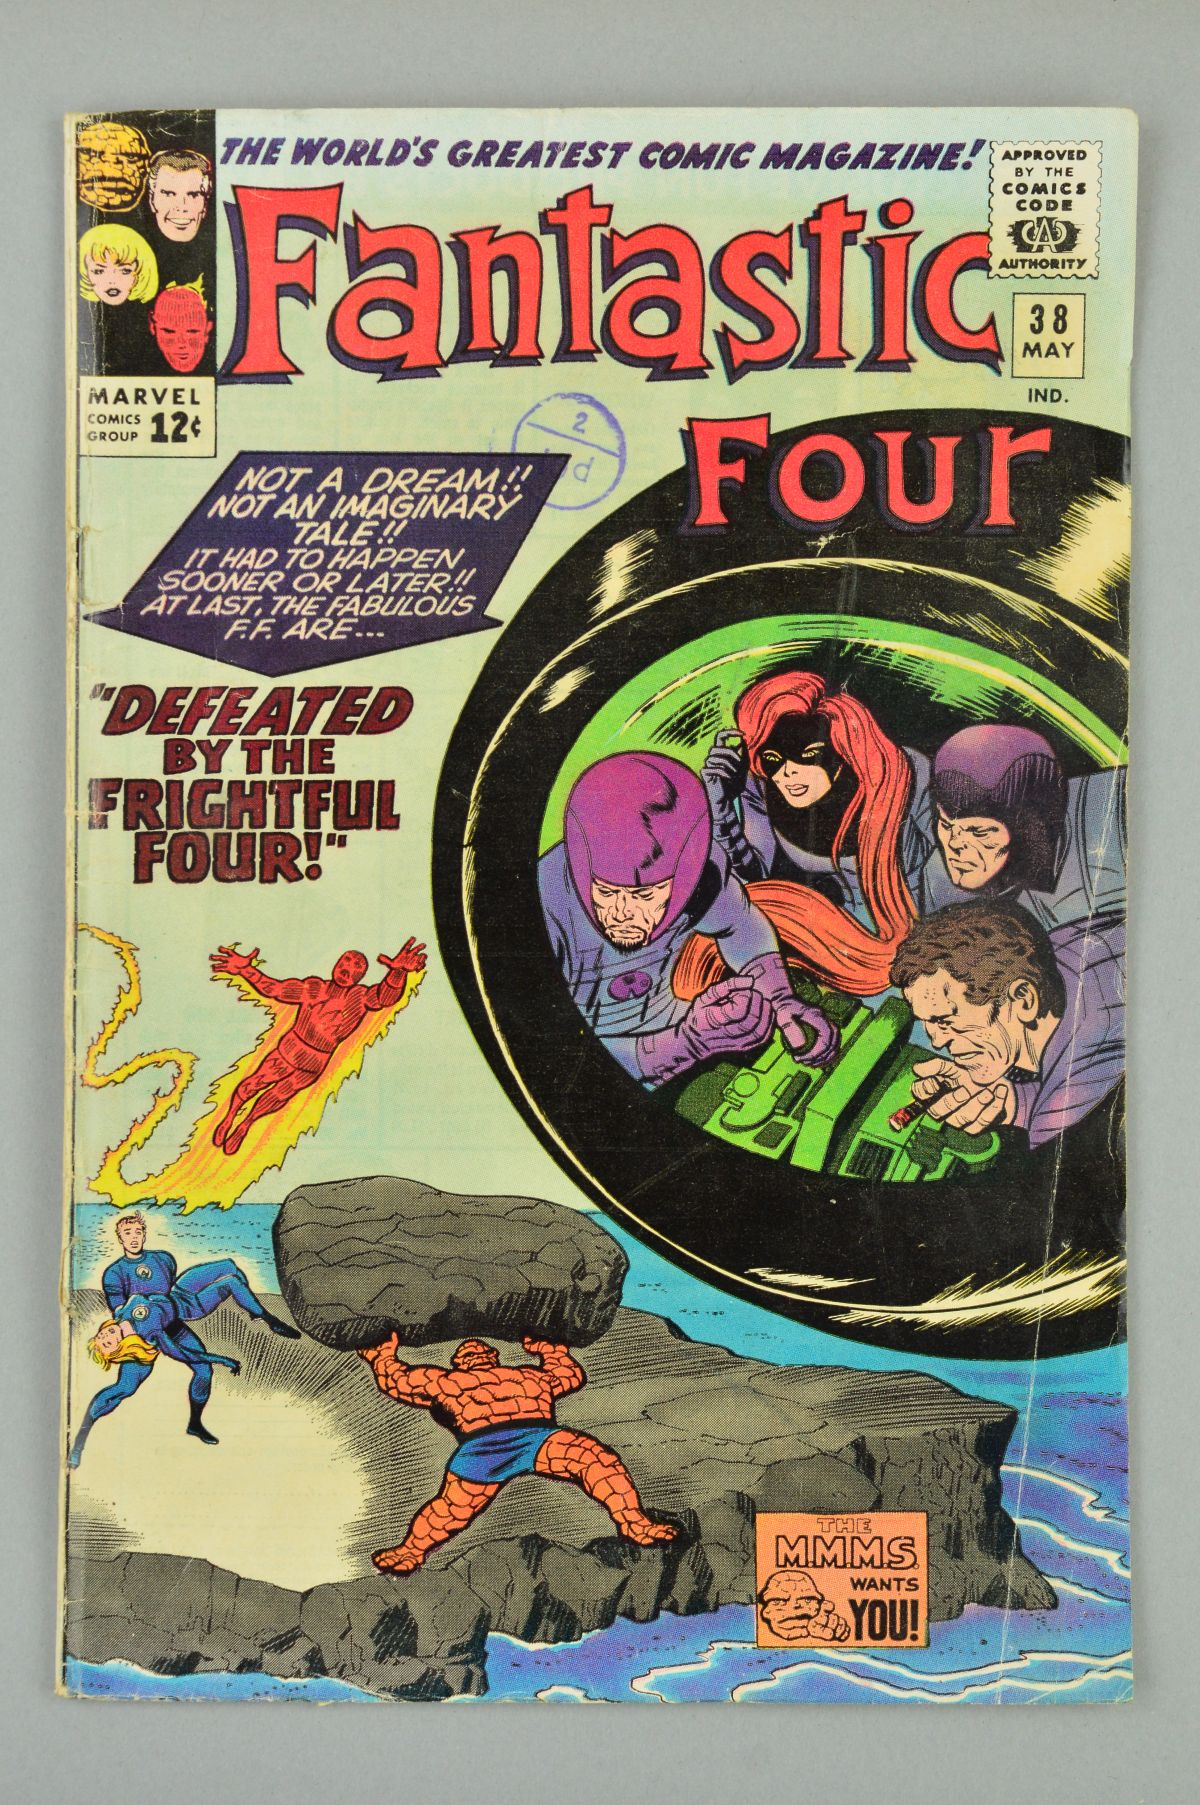 Lot 1837 - Fantastic Four (1961) #38, Published:May 10, 1965, Writer:Stan Lee, Penciller:Jack Kirby, Cover